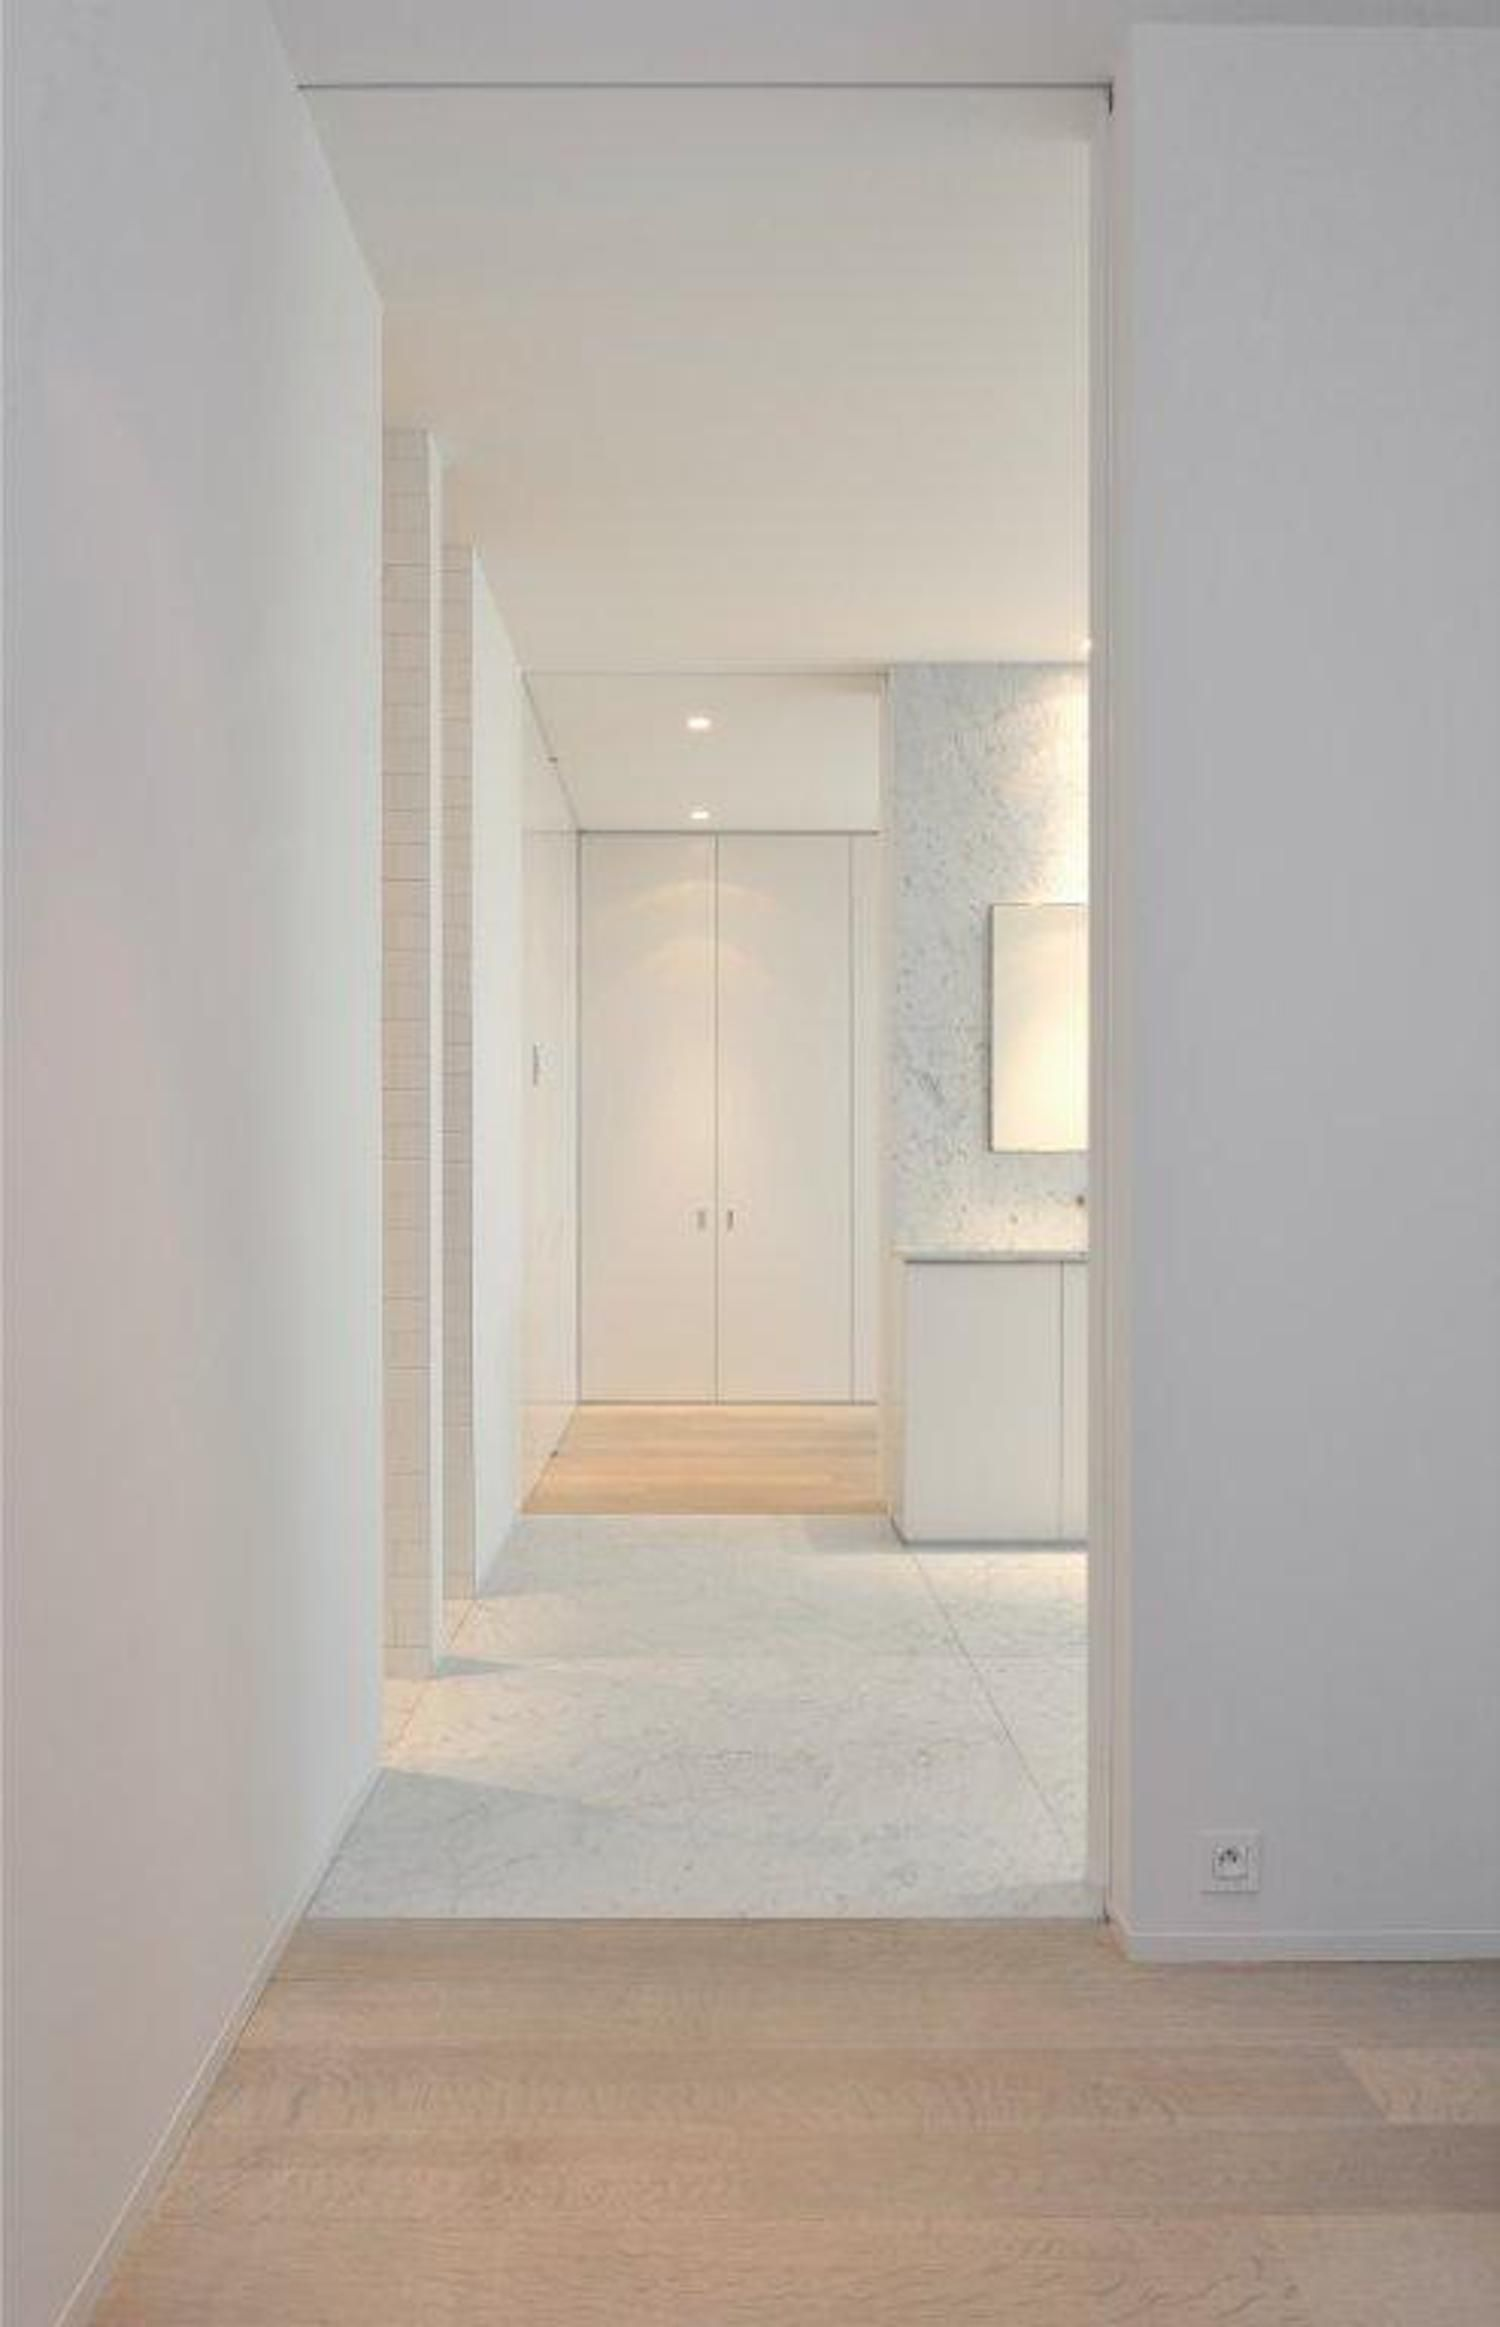 Apartment Ld Interior Apartment Ld Interior Pinterest - Apartment-at-westwood-by-k2ld-architects